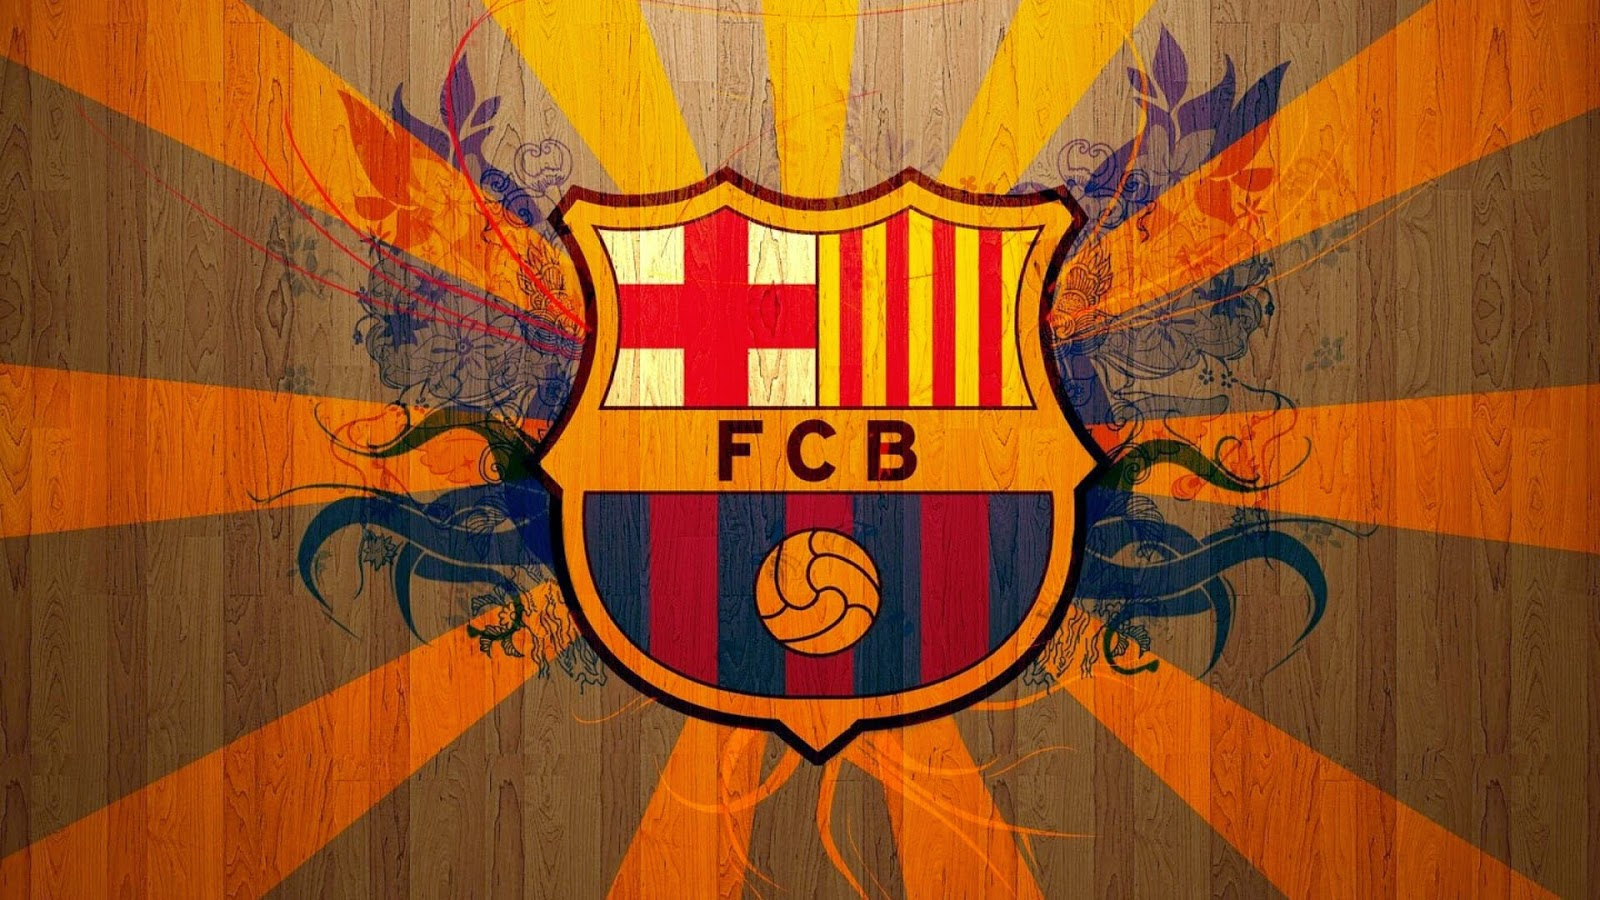 Fc Barcelona Live Wallpaper 3d Barcelona Football Club Wallpaper Football Wallpaper Hd